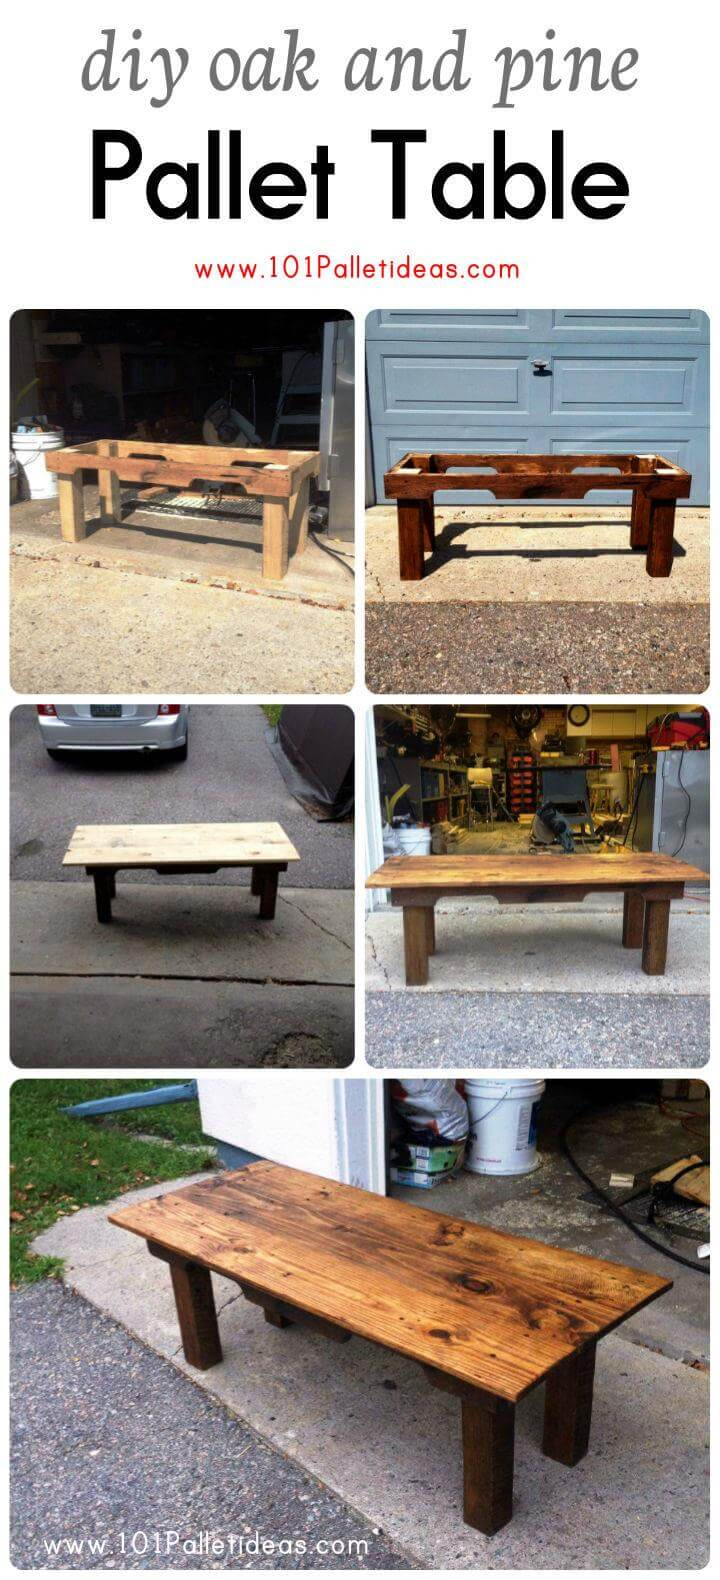 pallet table plans. absorbing wood pallet furniture as wells as wood ...